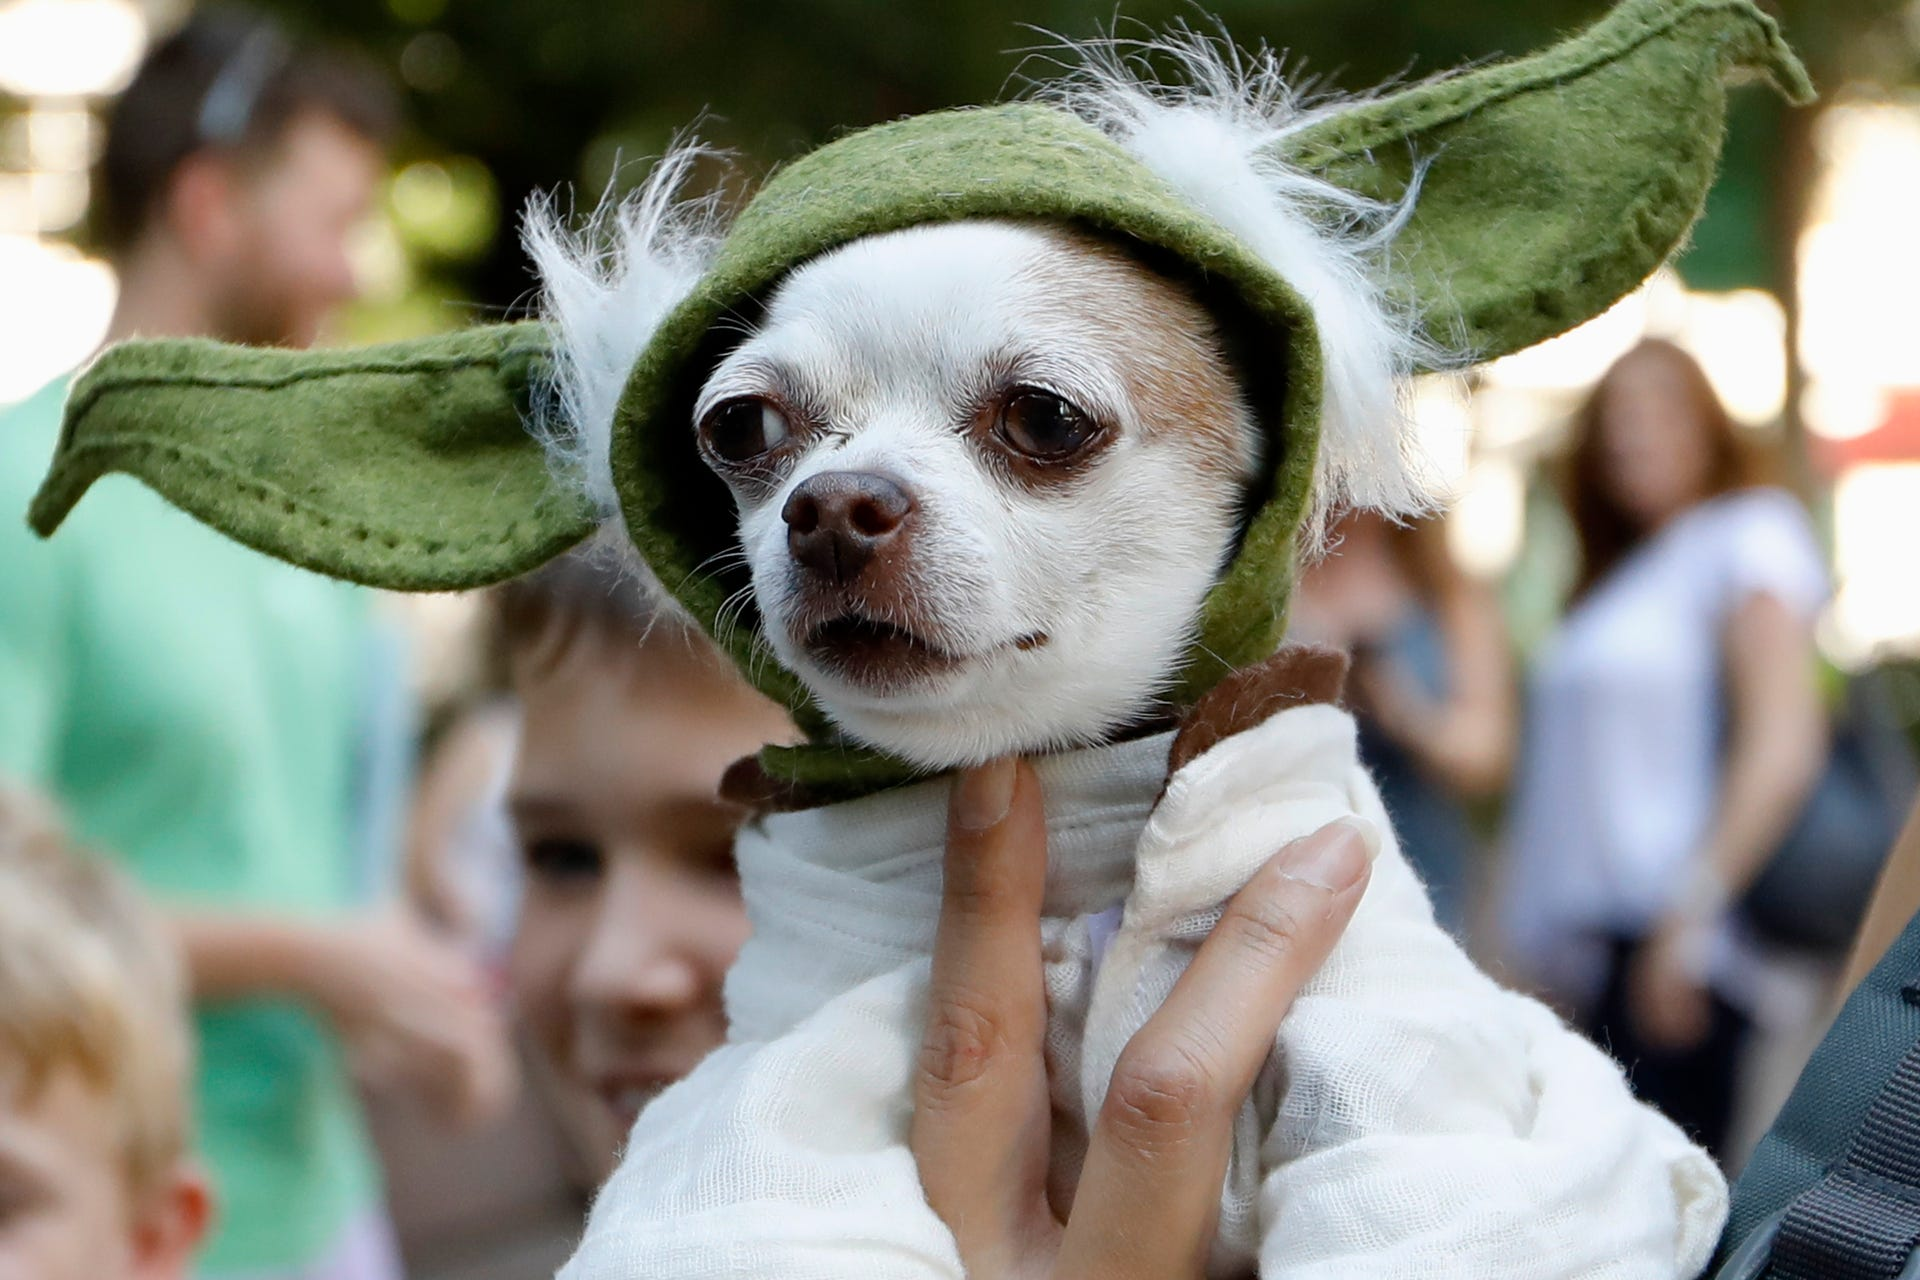 "A dog dressed as Yoda from ""Star Wars"" won the cosplay costume contest award at Doggy Con in Woodruff Park, Saturday, Aug. 17, 2019, in Atlanta. Cosplay is the practice of dressing up like a fictional character."